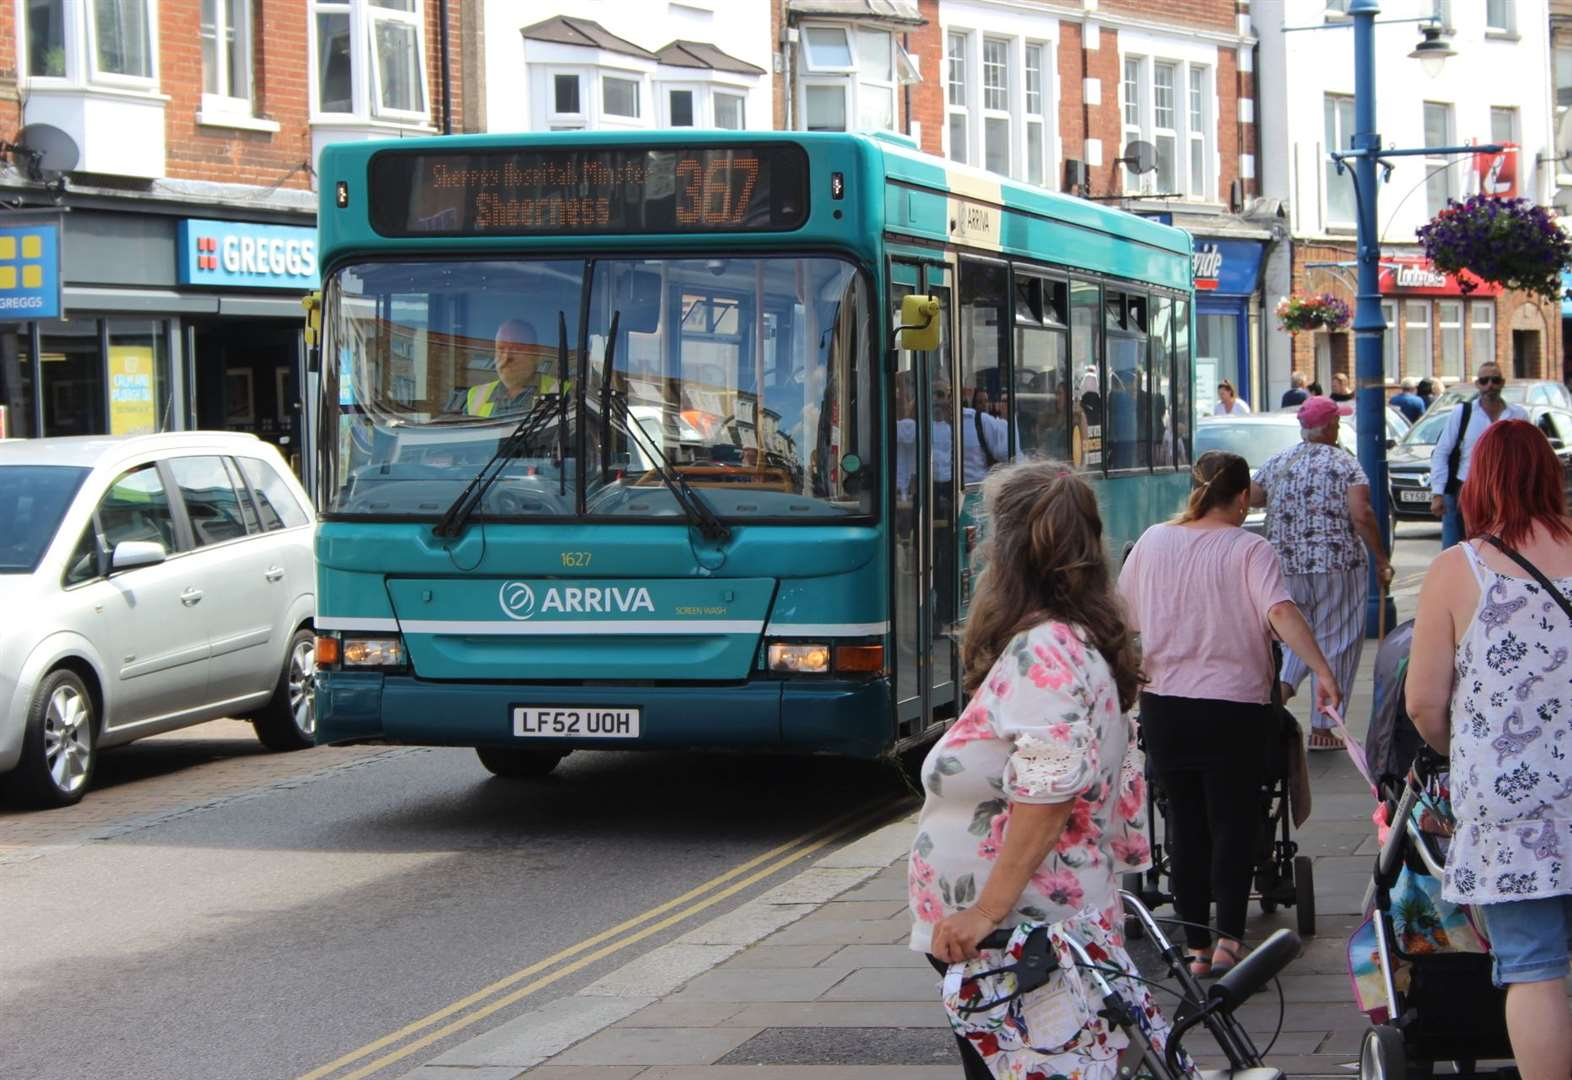 Passengers fume over new bus timetable